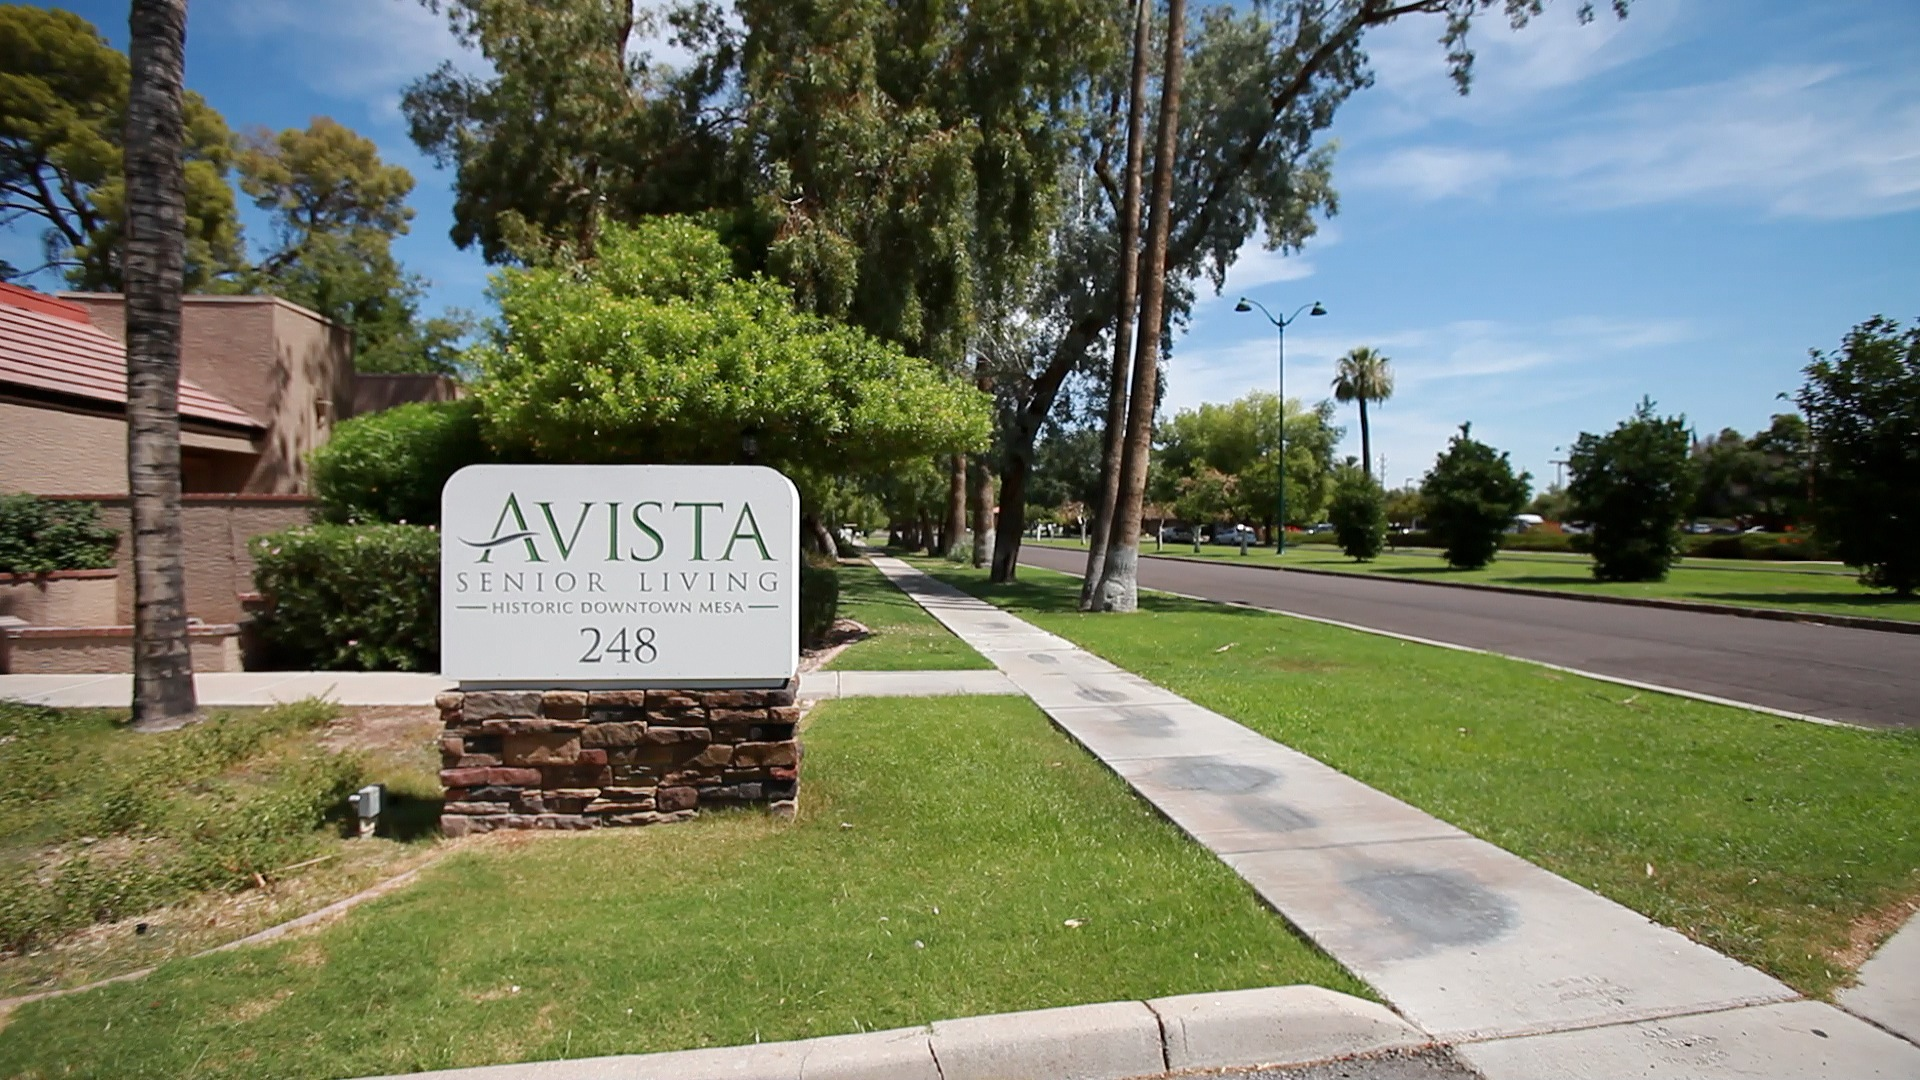 Avista Senior Living Historic Downtown Mesa - Mesa, AZ